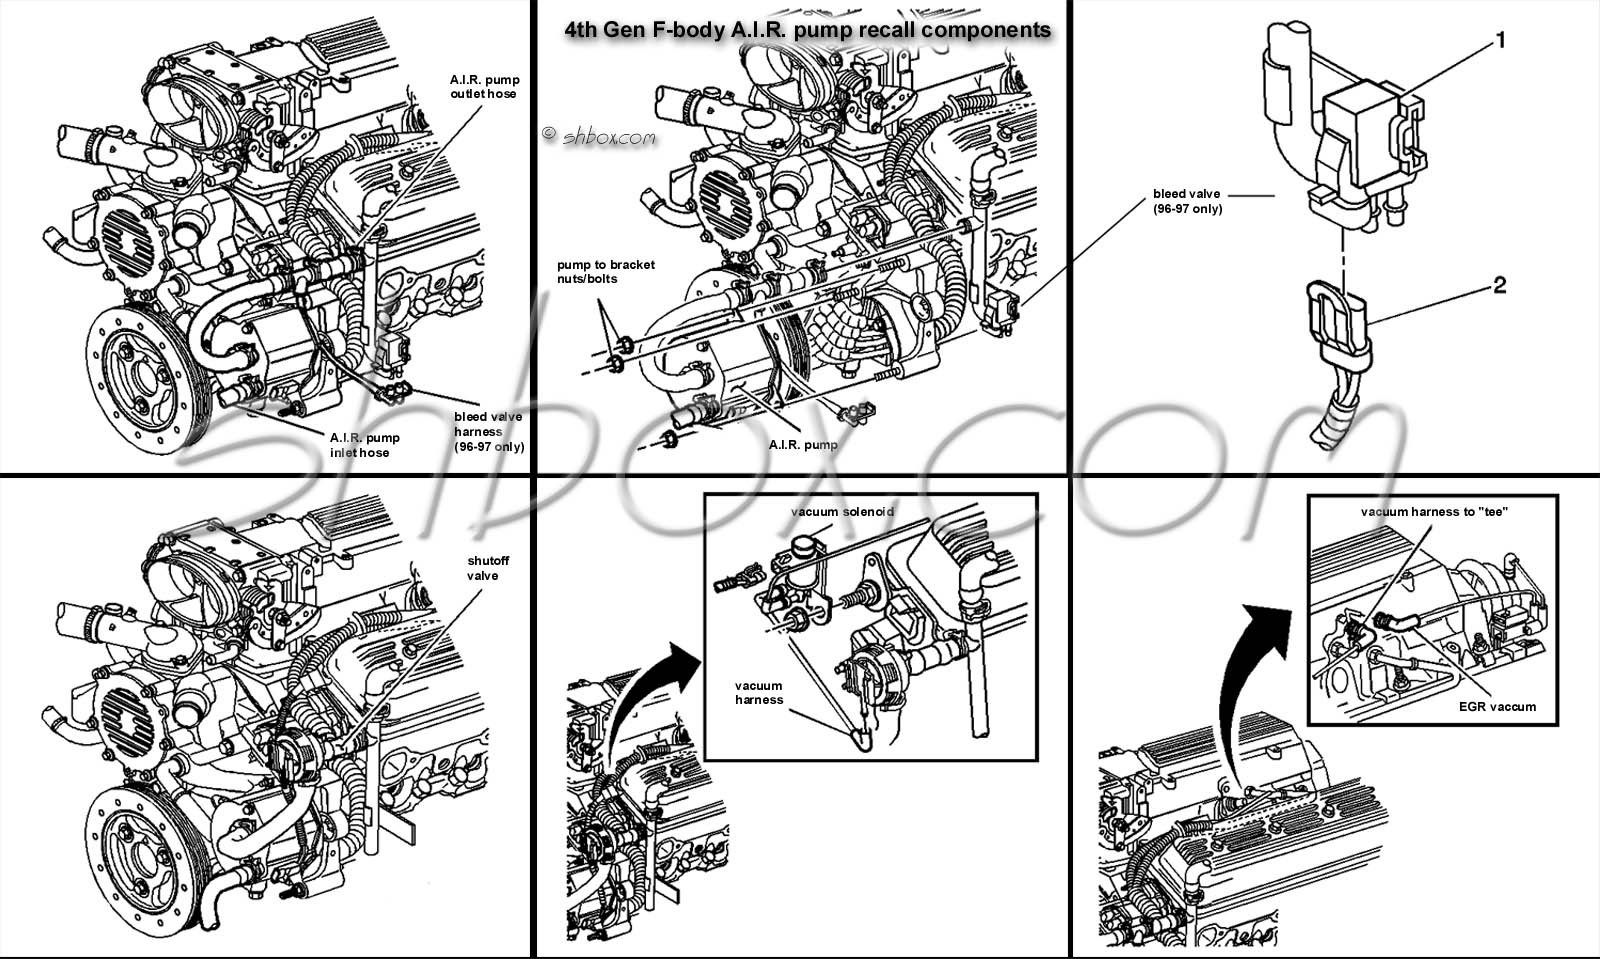 hight resolution of 97 camaro rs engine diagram wiring diagrams scematic 350 chevy engine parts diagram 1992 camaro engine diagram